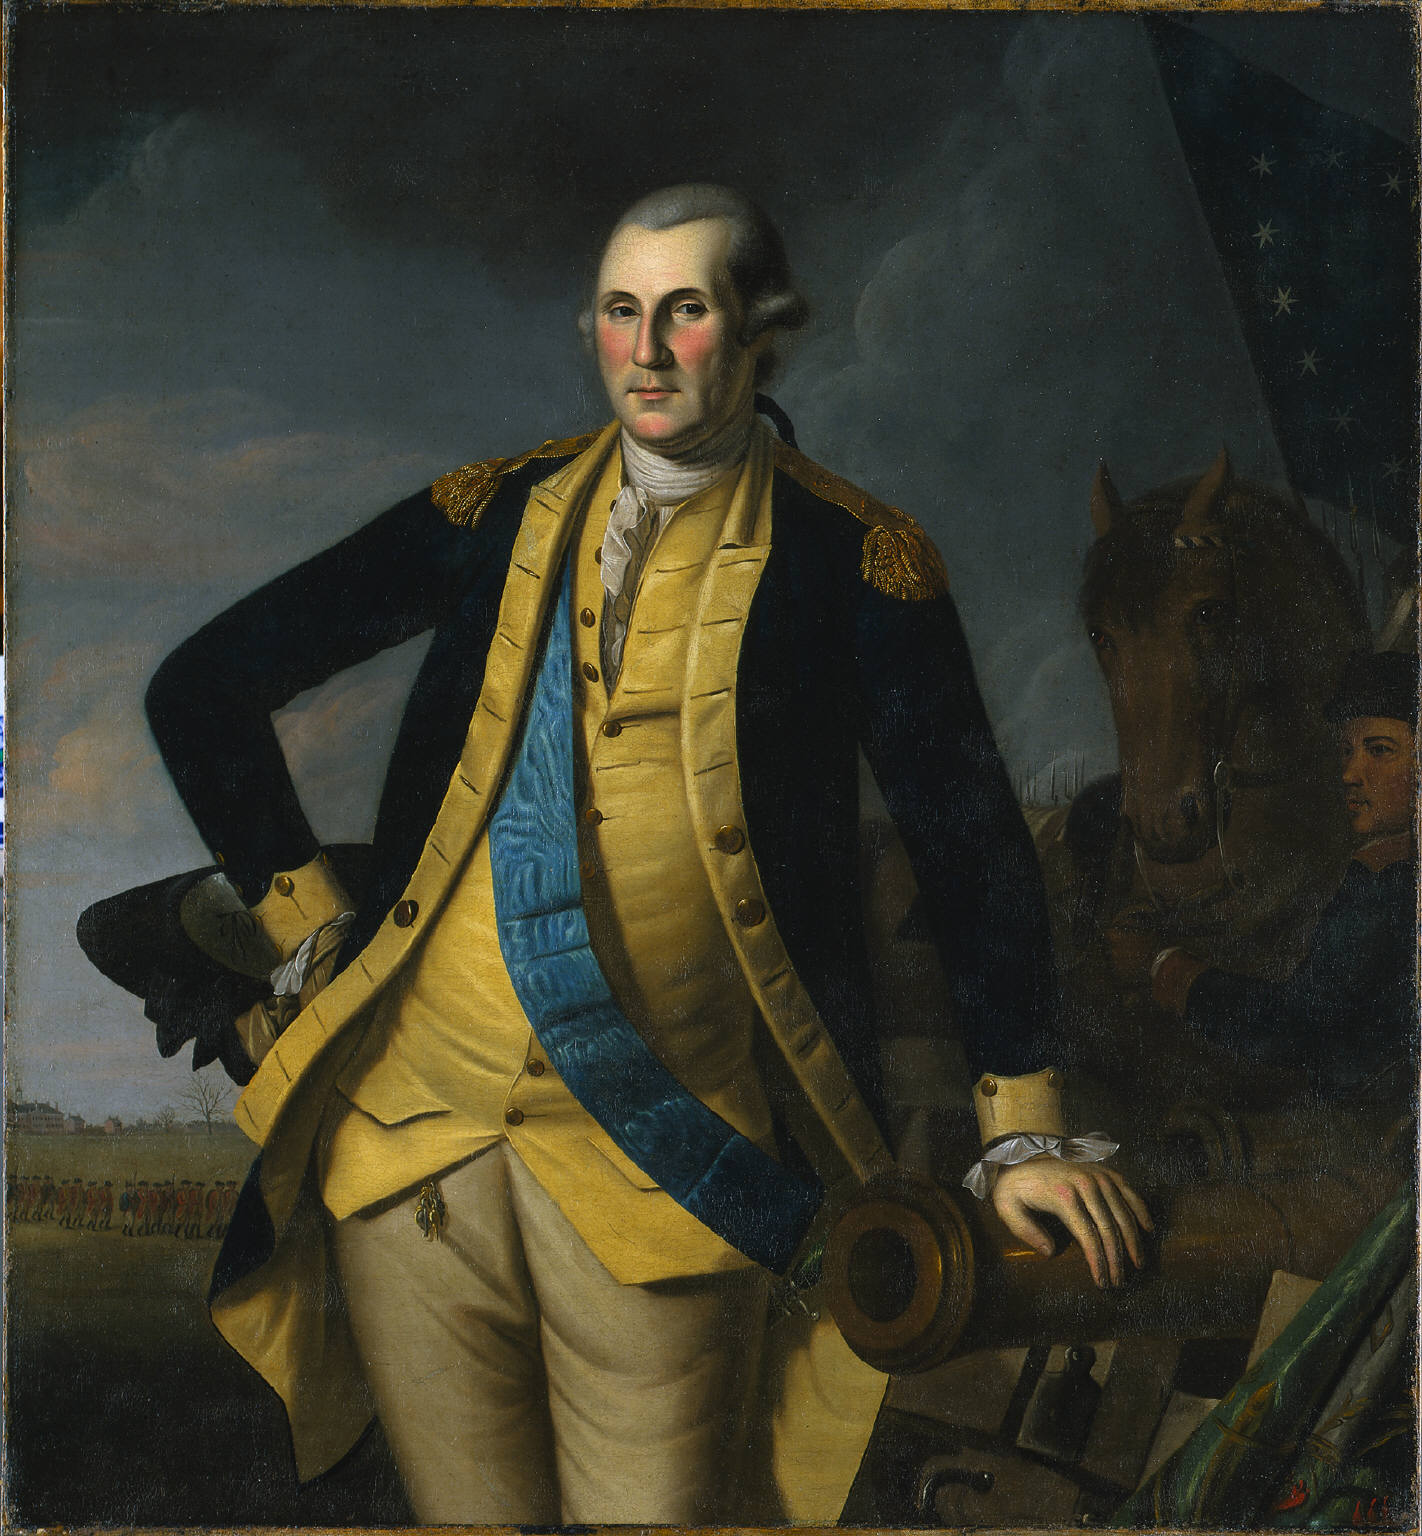 George Washington in uniforme